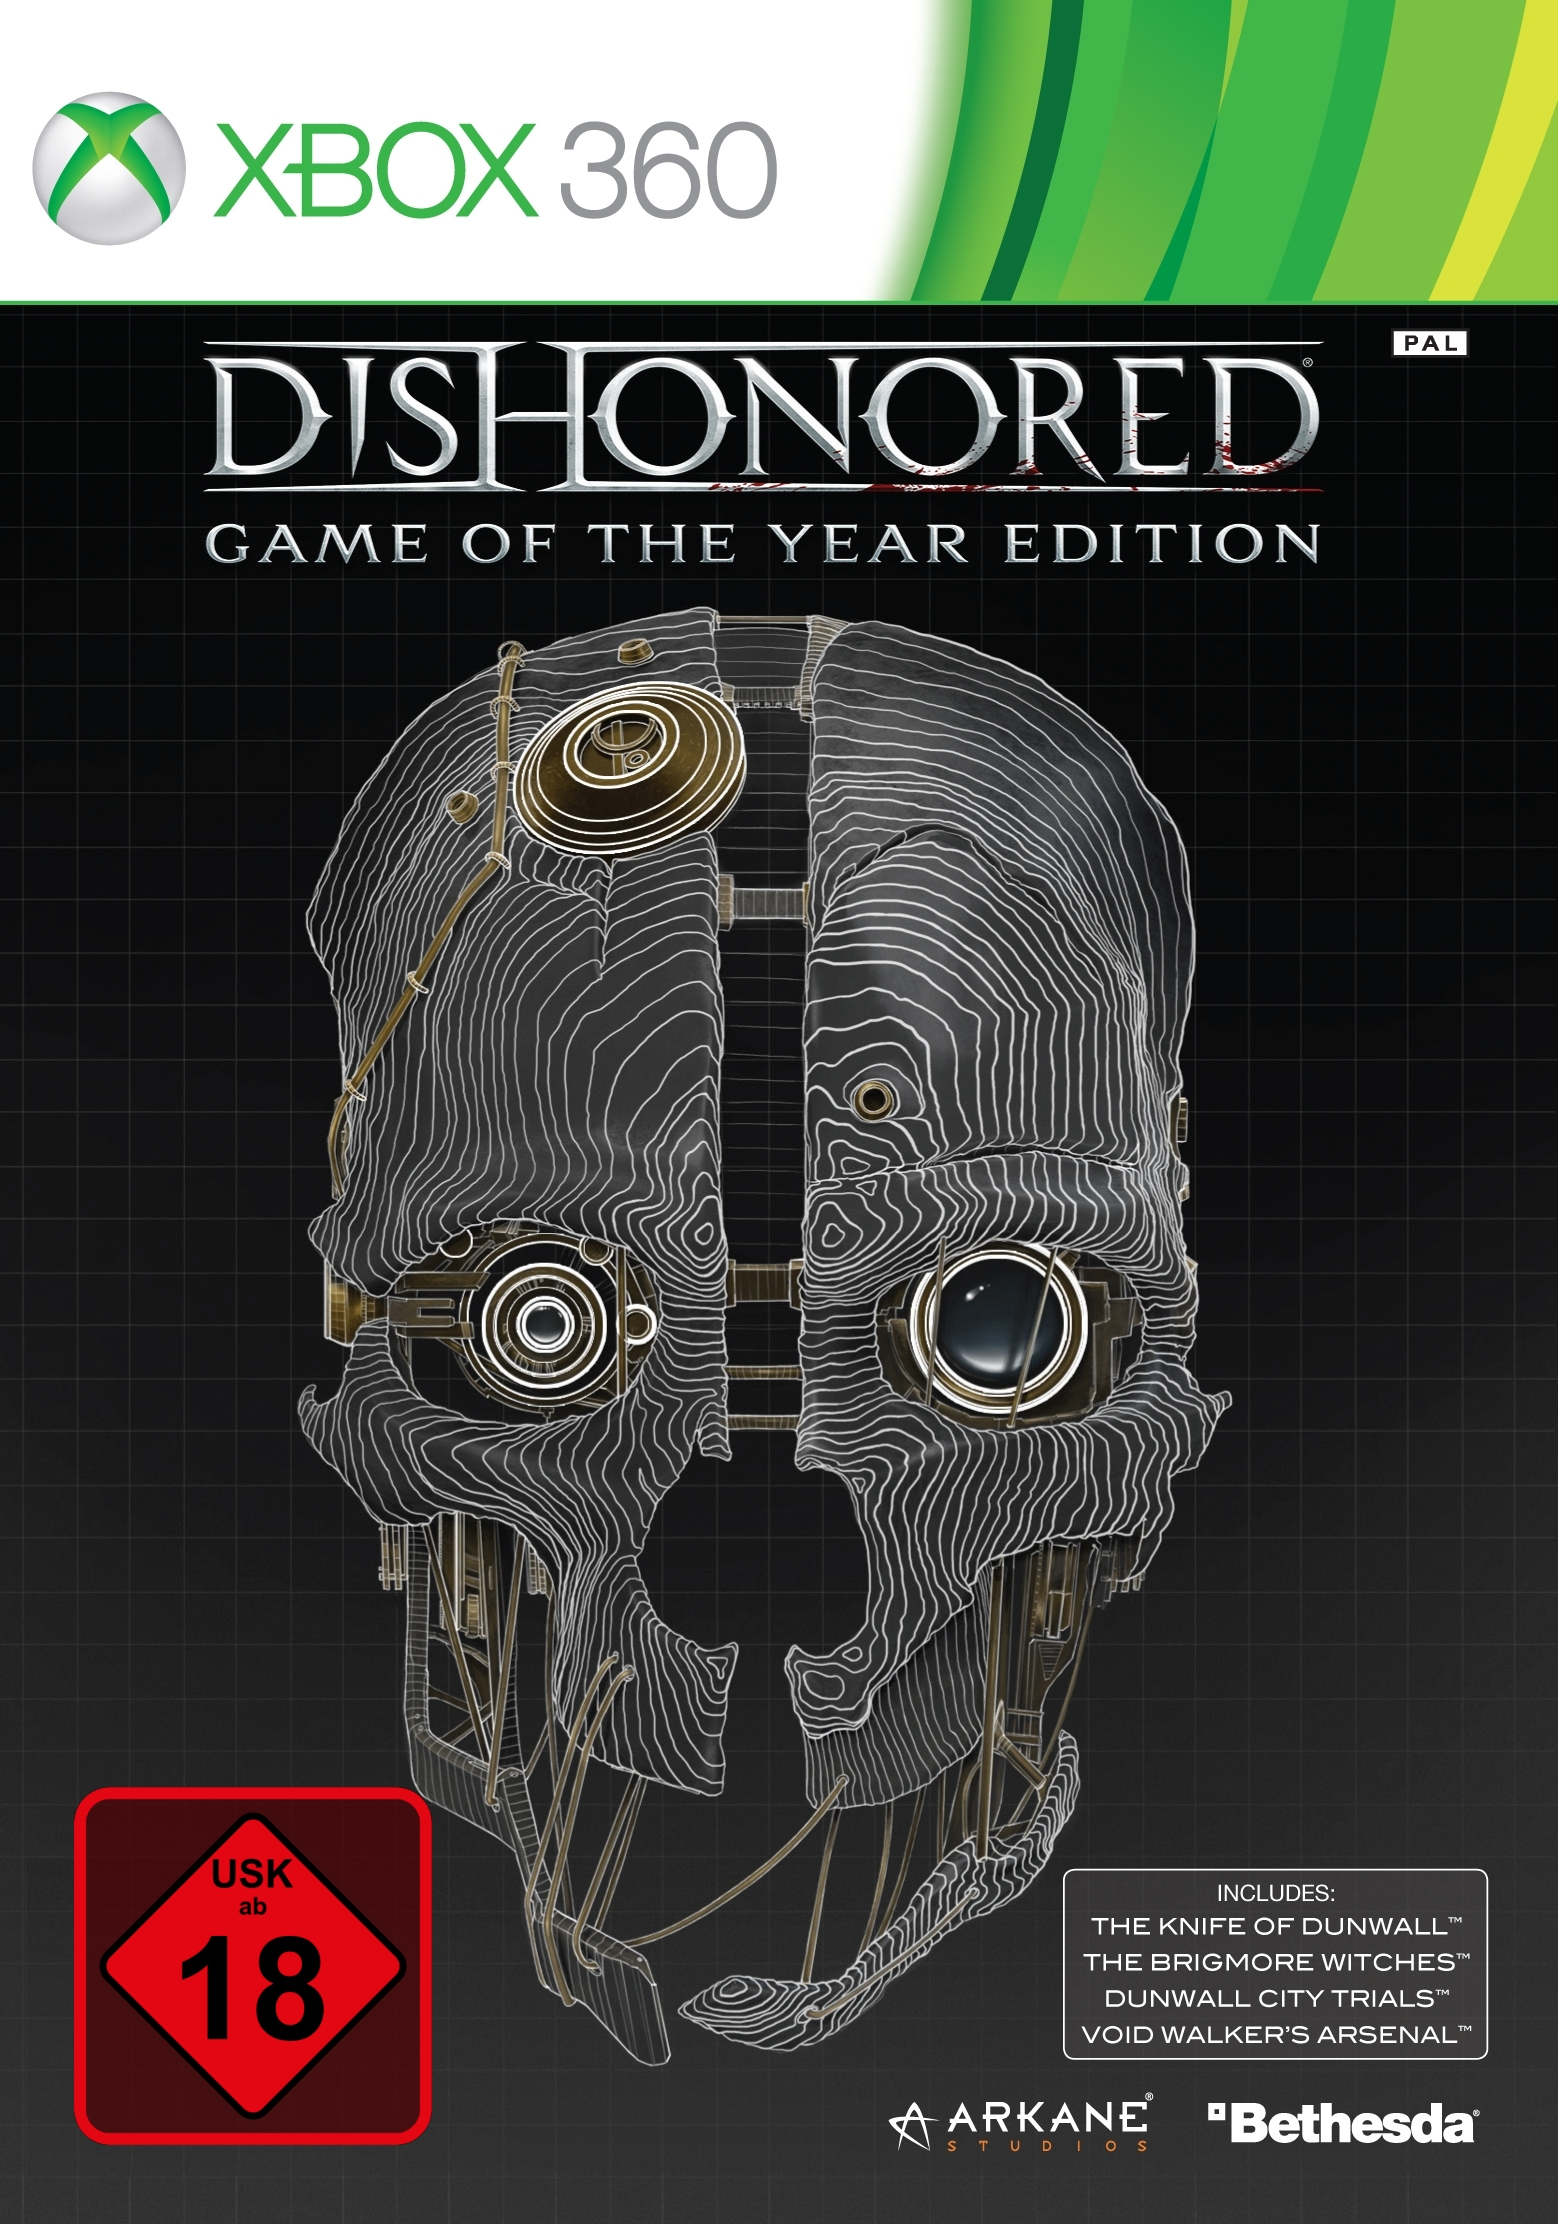 Dishonored: GOTY Edition - Age Rating:18 (PC Game) 769003 - C2000